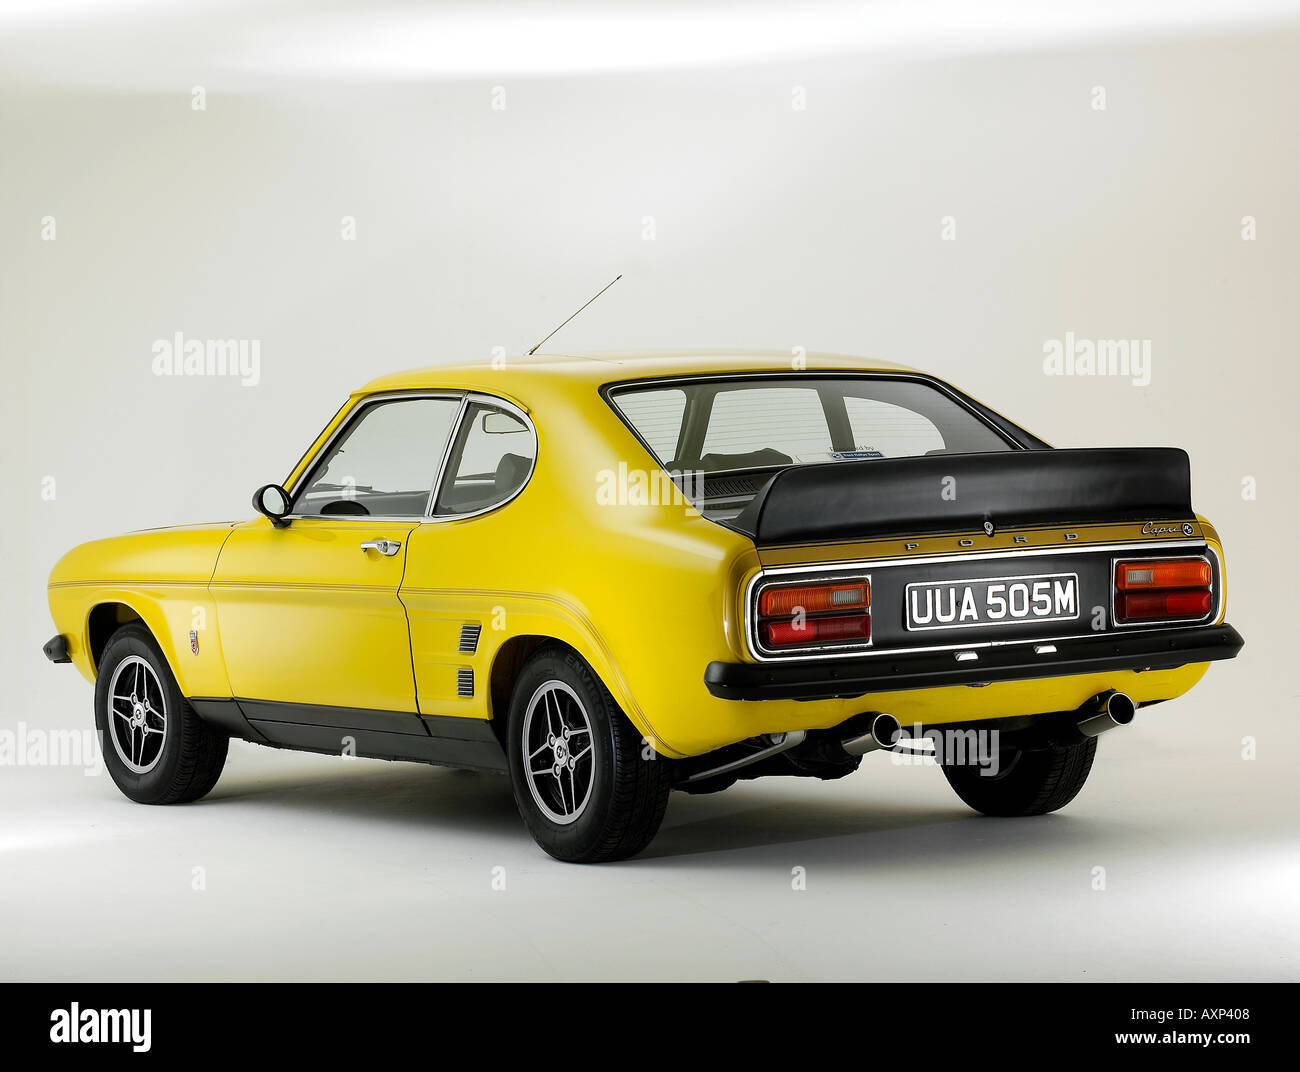 1973 ford capri rs 3100 stock photo royalty free image. Black Bedroom Furniture Sets. Home Design Ideas